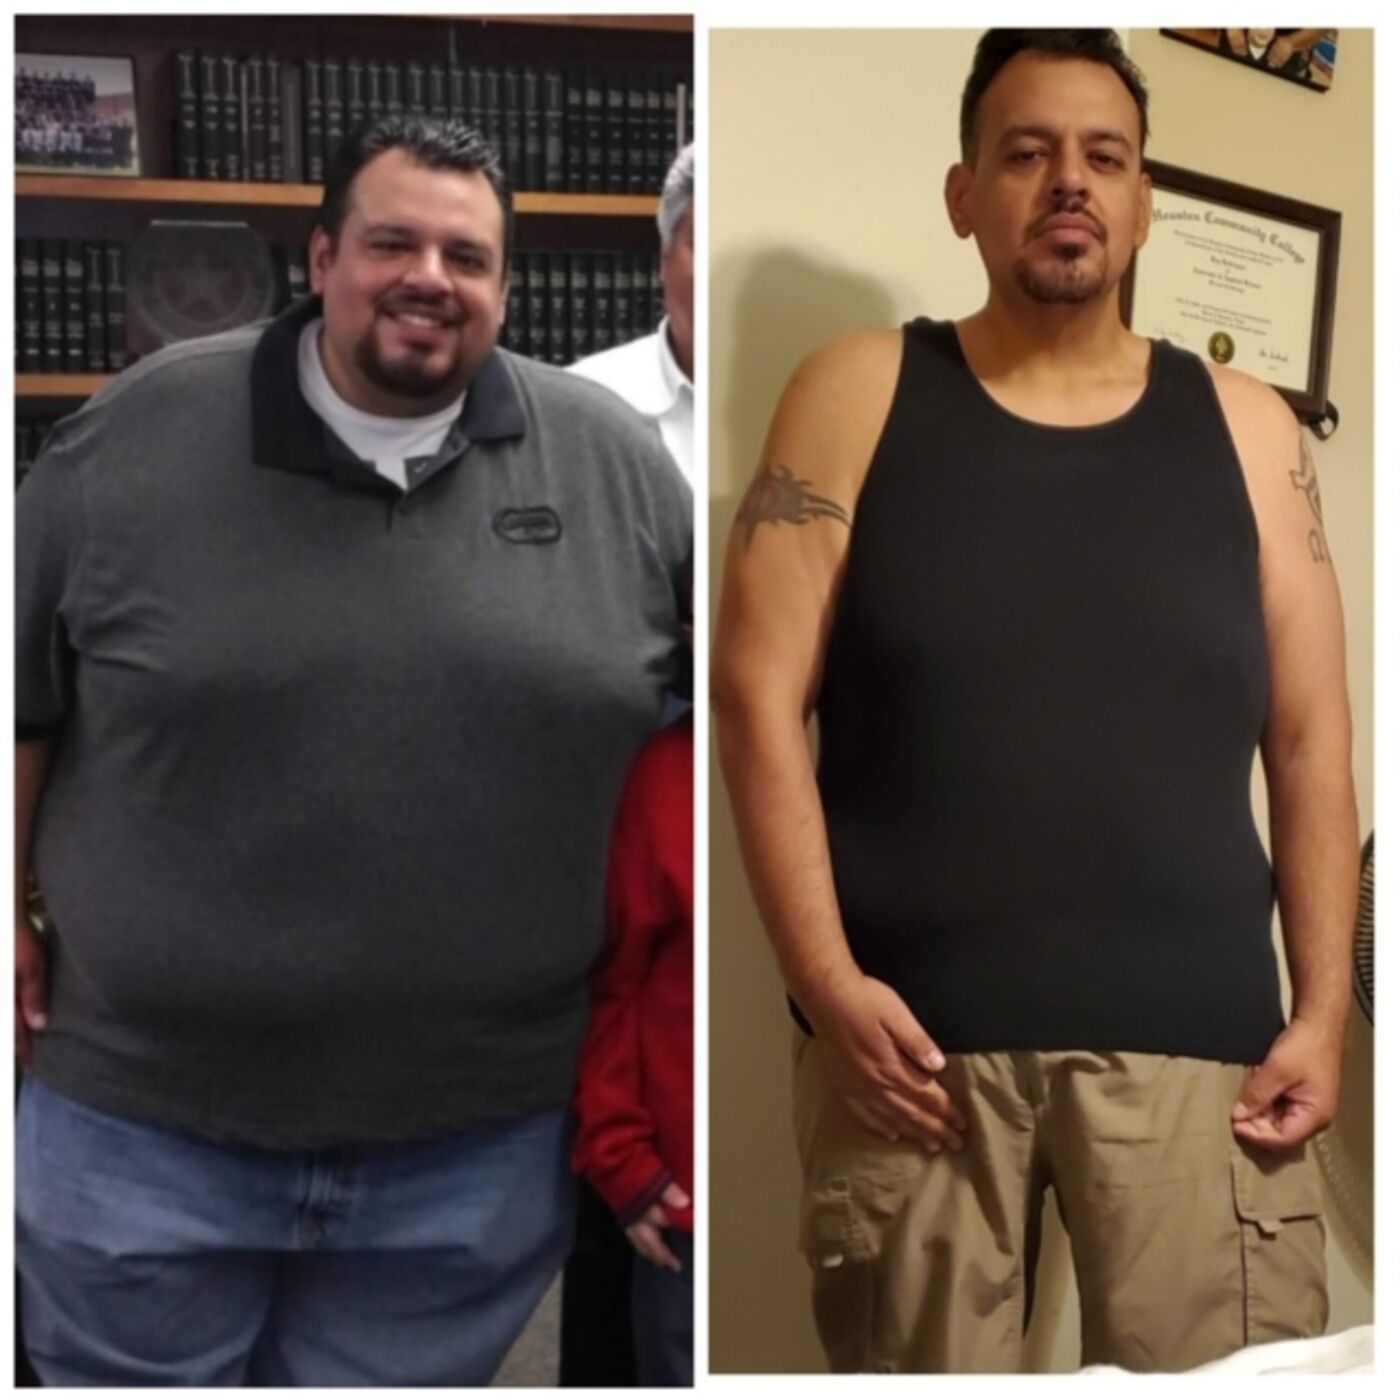 Bonus Show: Overcoming Obesity